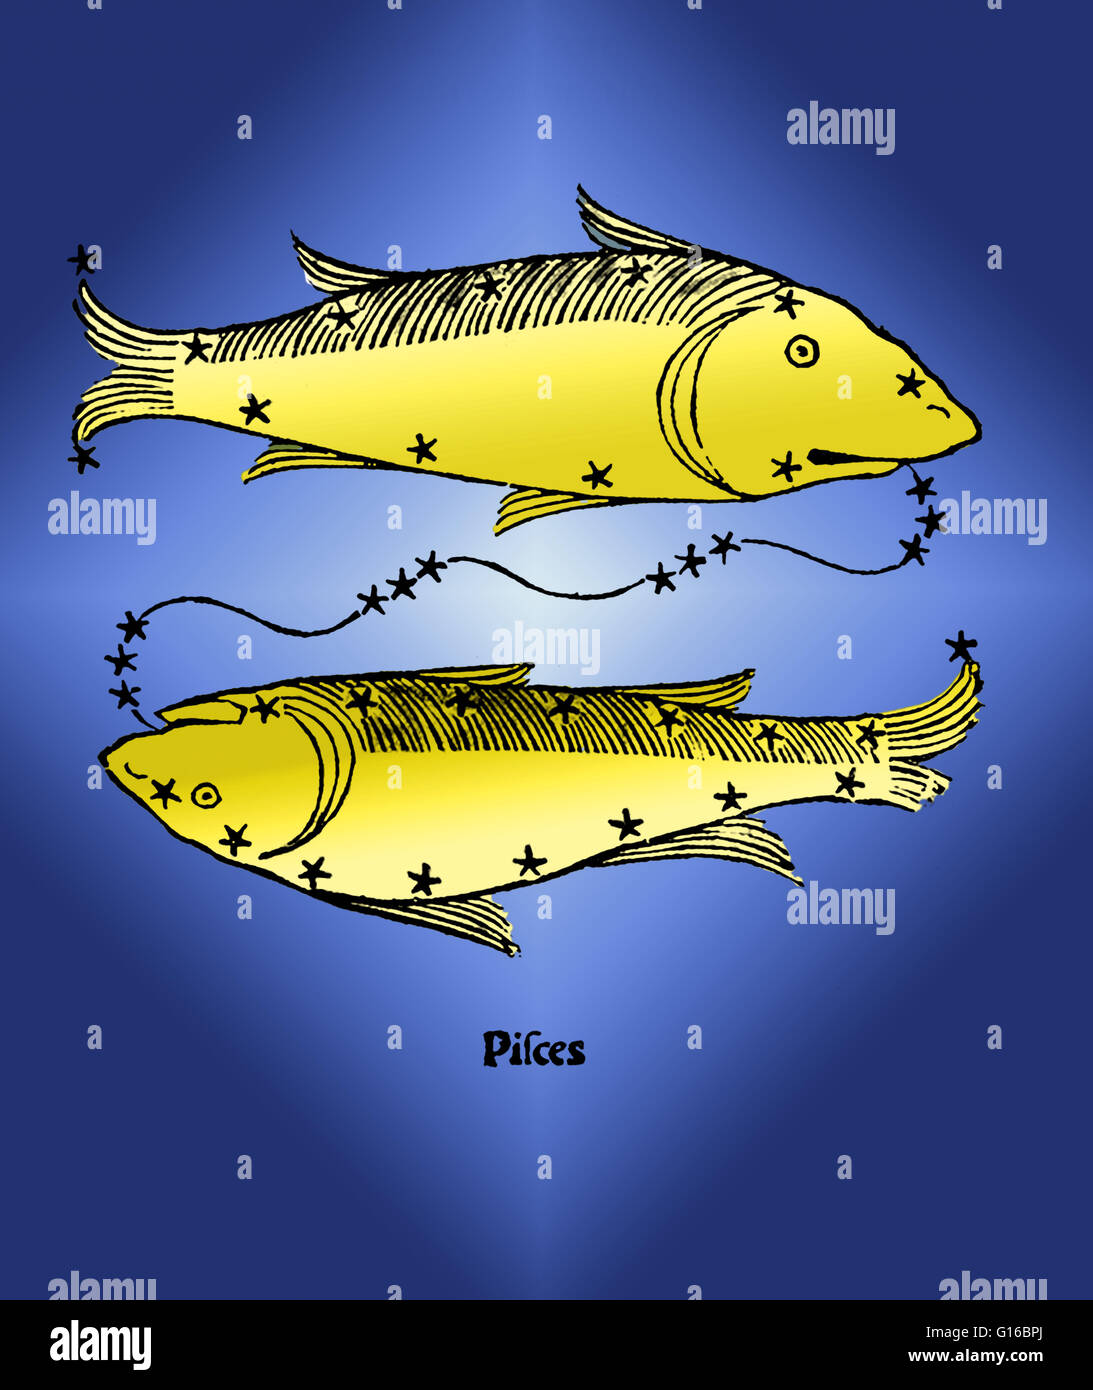 Color enhancement of Pisces, a constellation of the zodiac. Pisces translates to Latin plural for fish. It is one - Stock Image